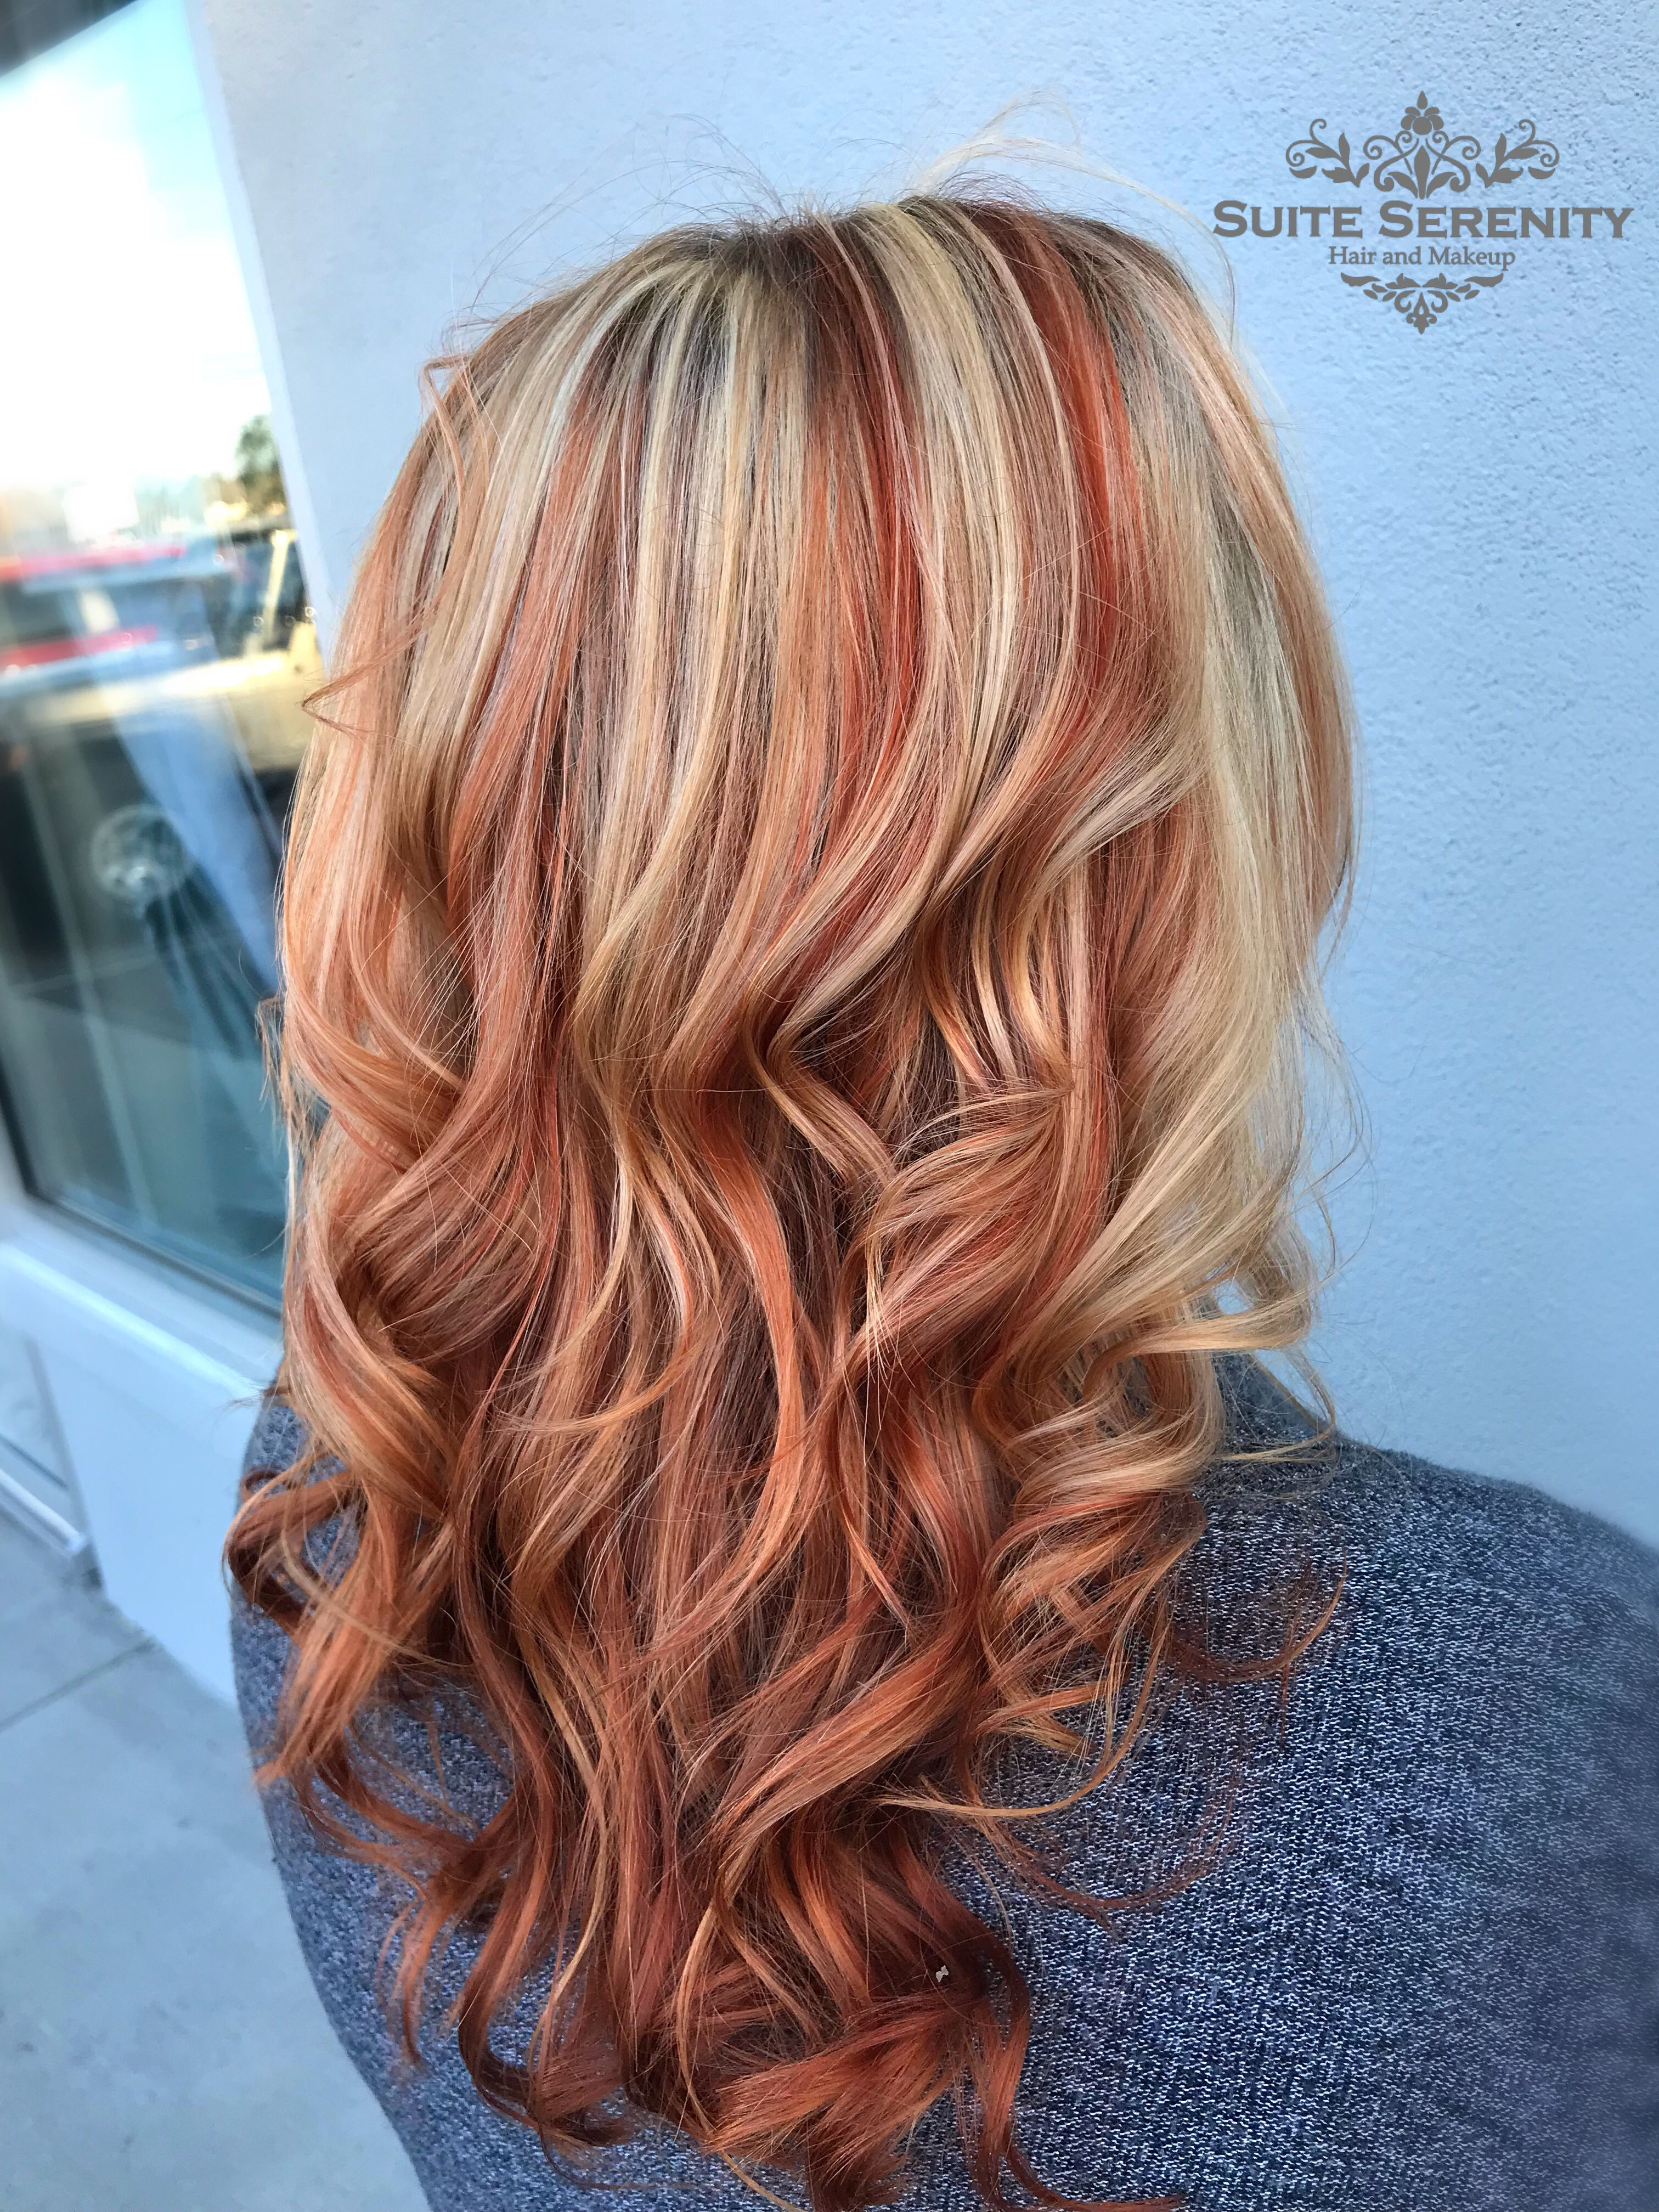 42++ Copper blonde hair with highlights ideas in 2021